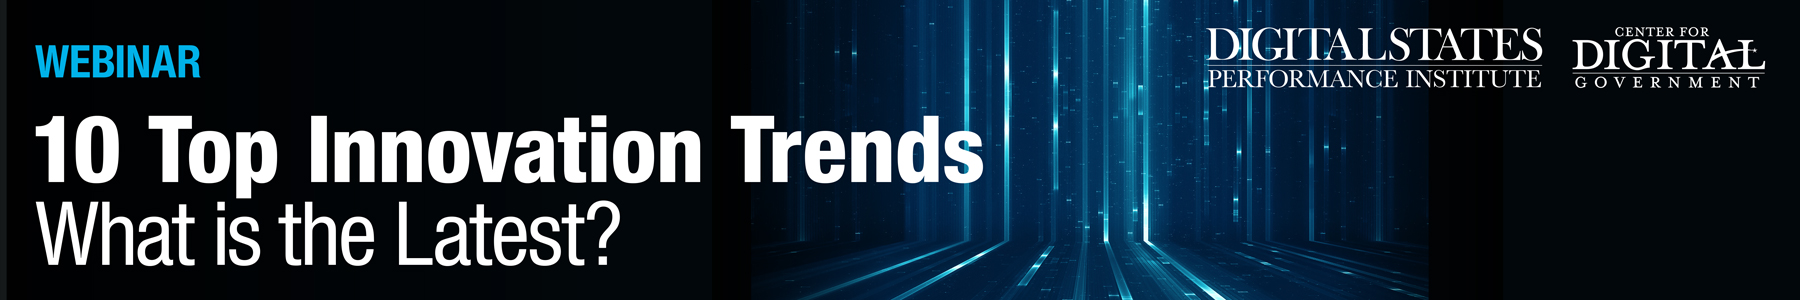 10 Top Innovation Trends - What is the Latest?